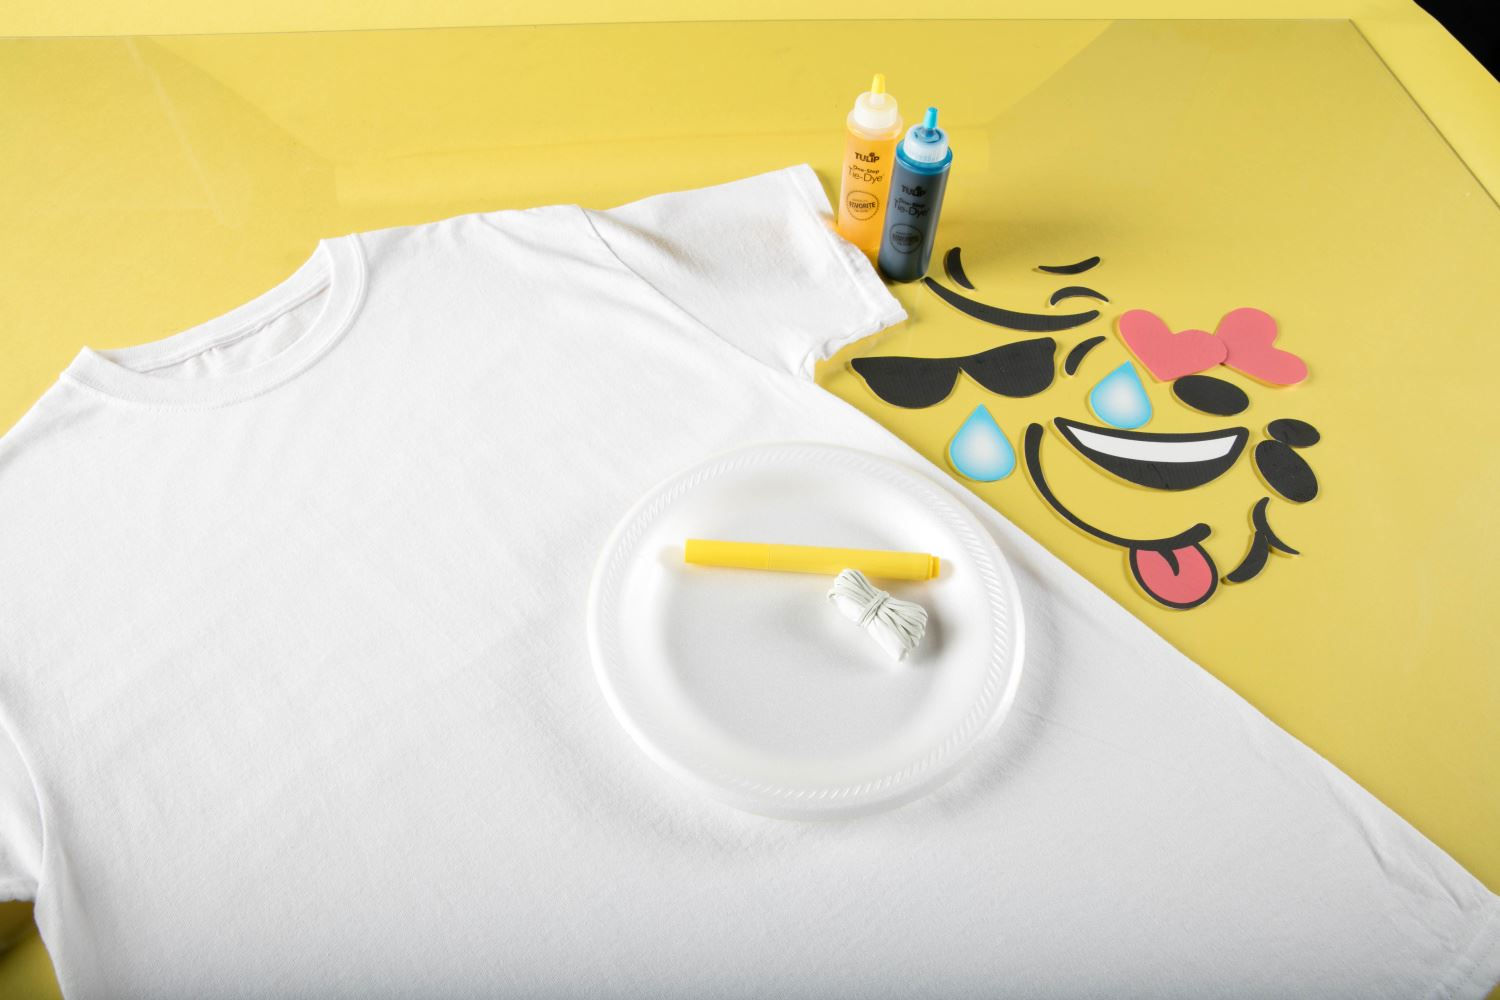 How to Emoji Tie Dye supplies